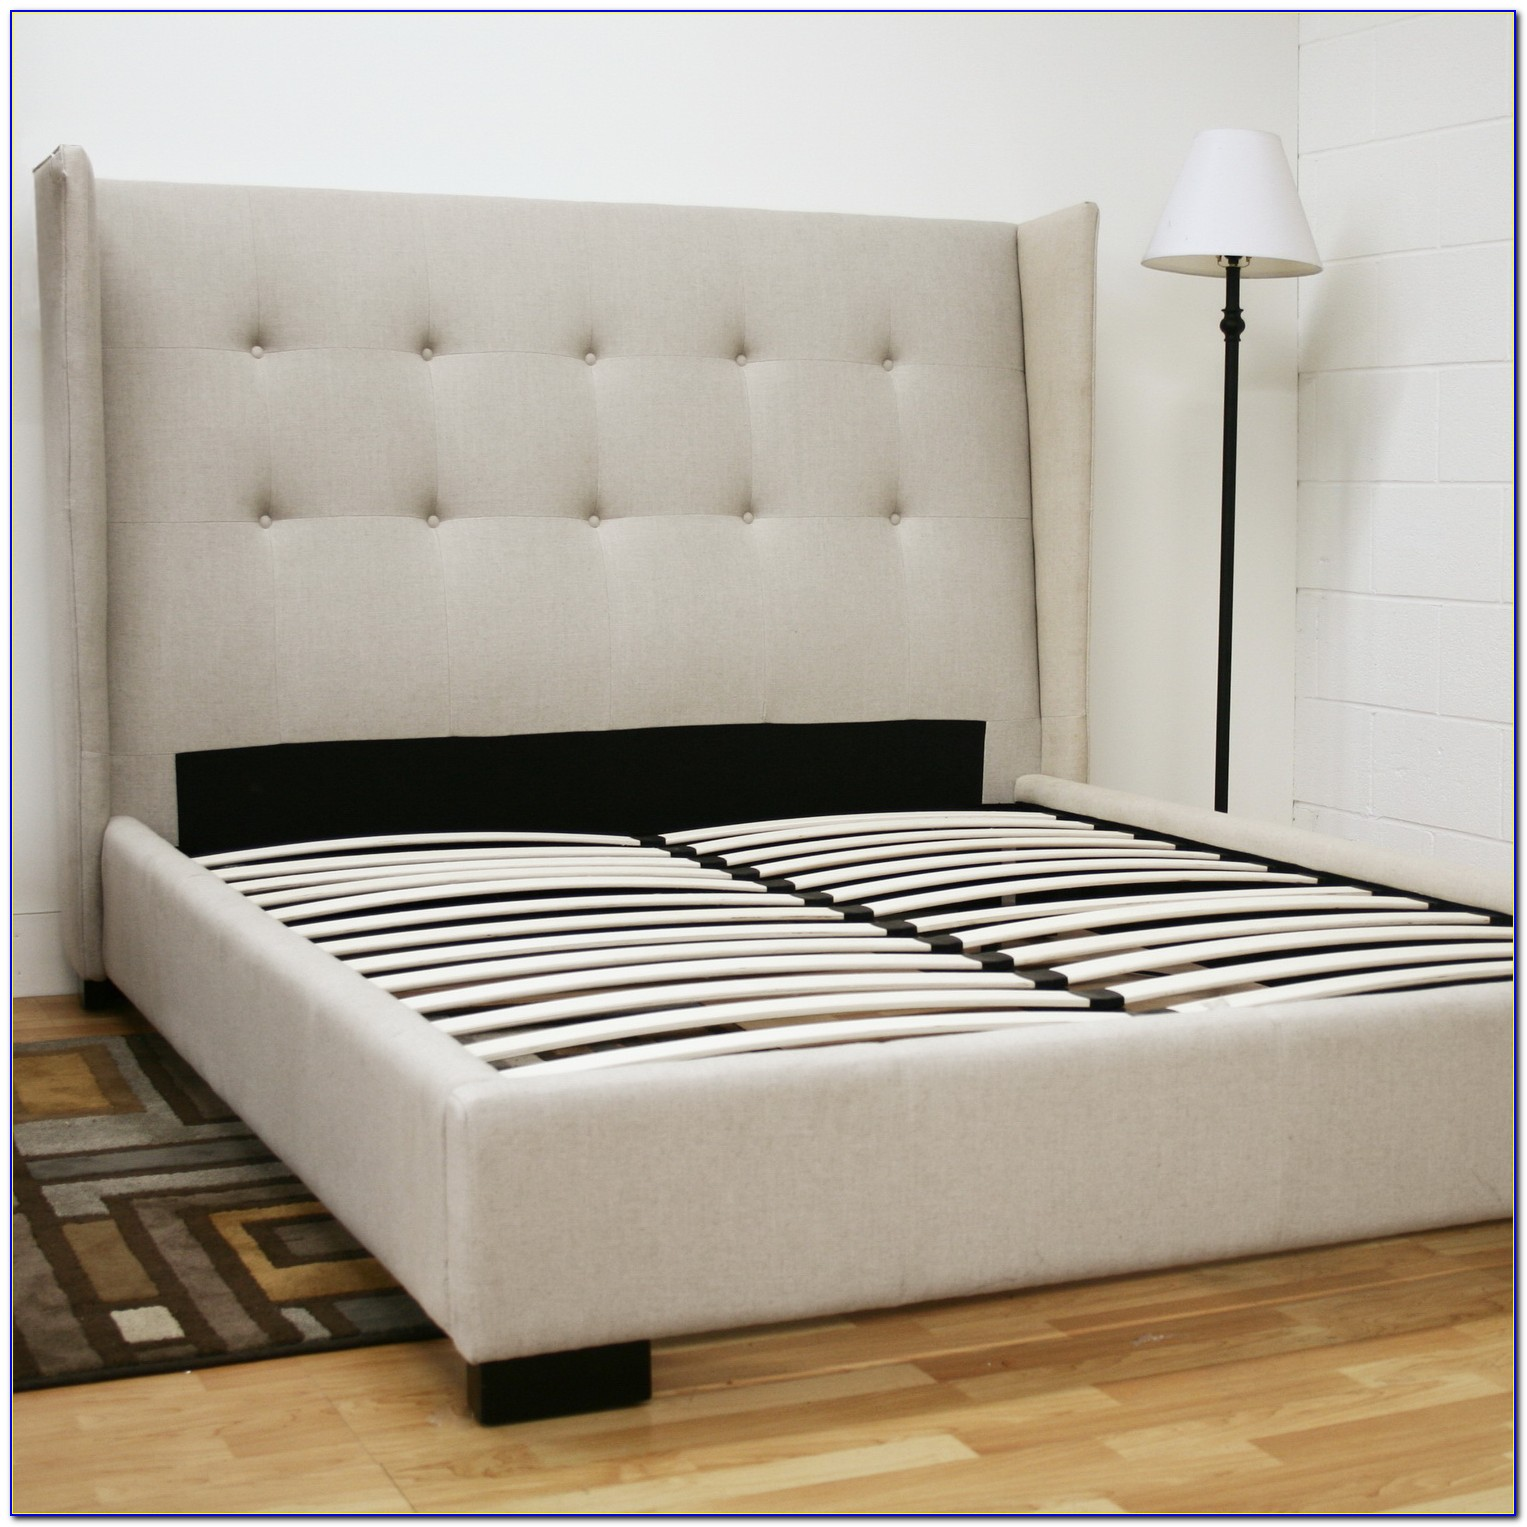 Queen Size Headboards For Platform Beds